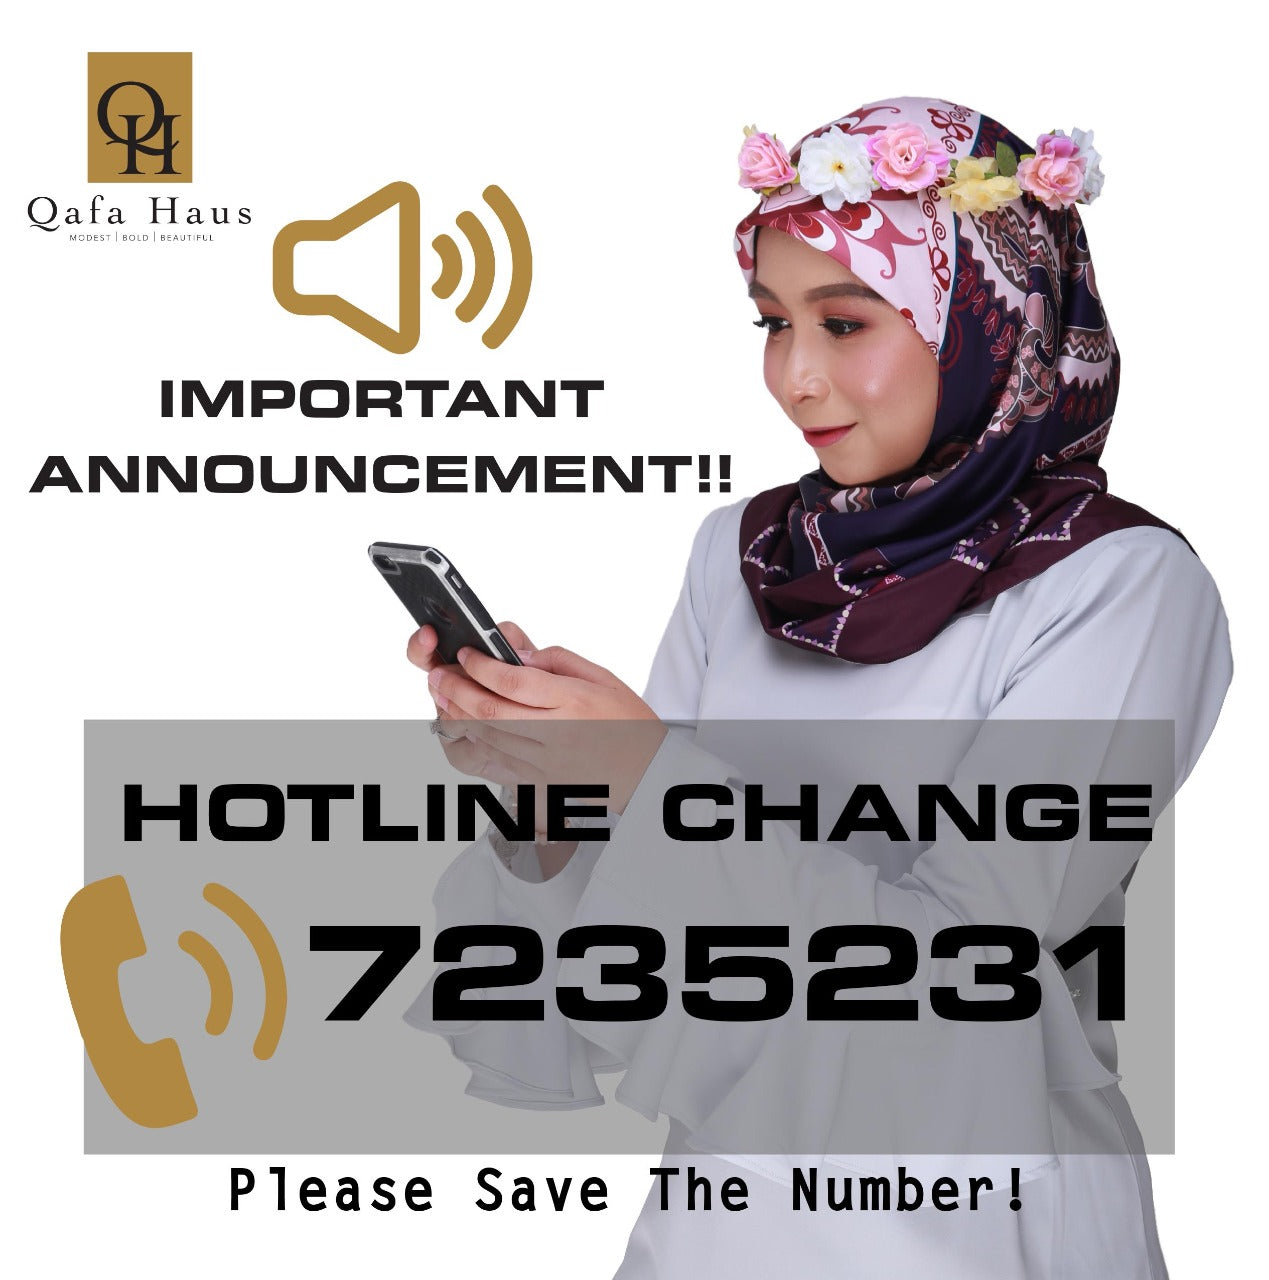 QAFA HAUS NEW HOTLINE